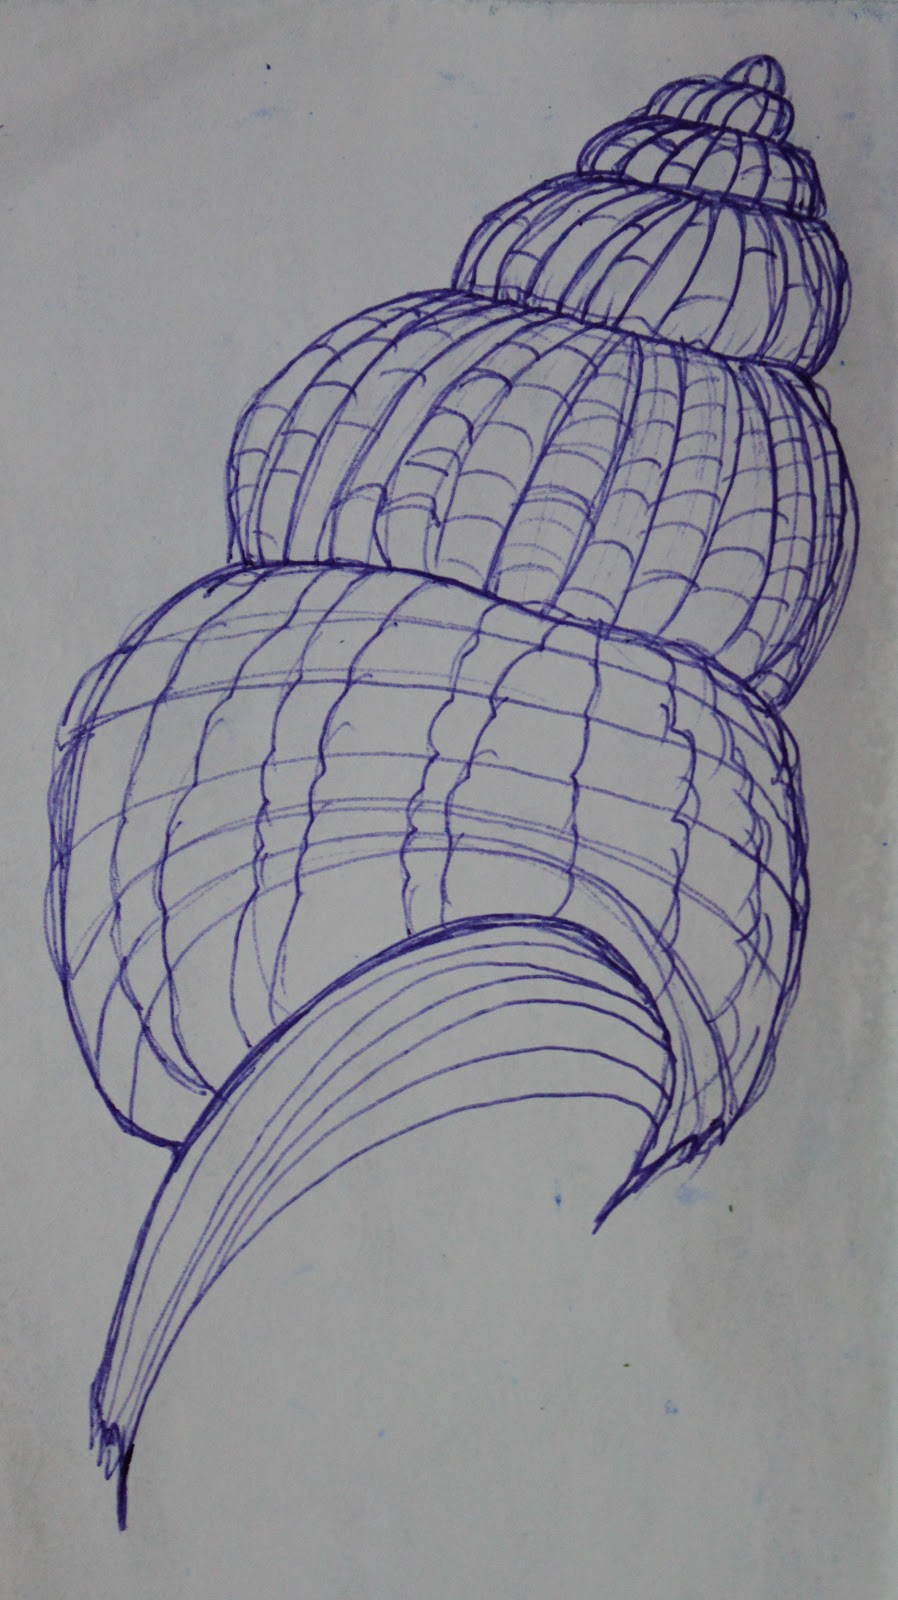 Drawn shell pen drawing Back the drawing my based